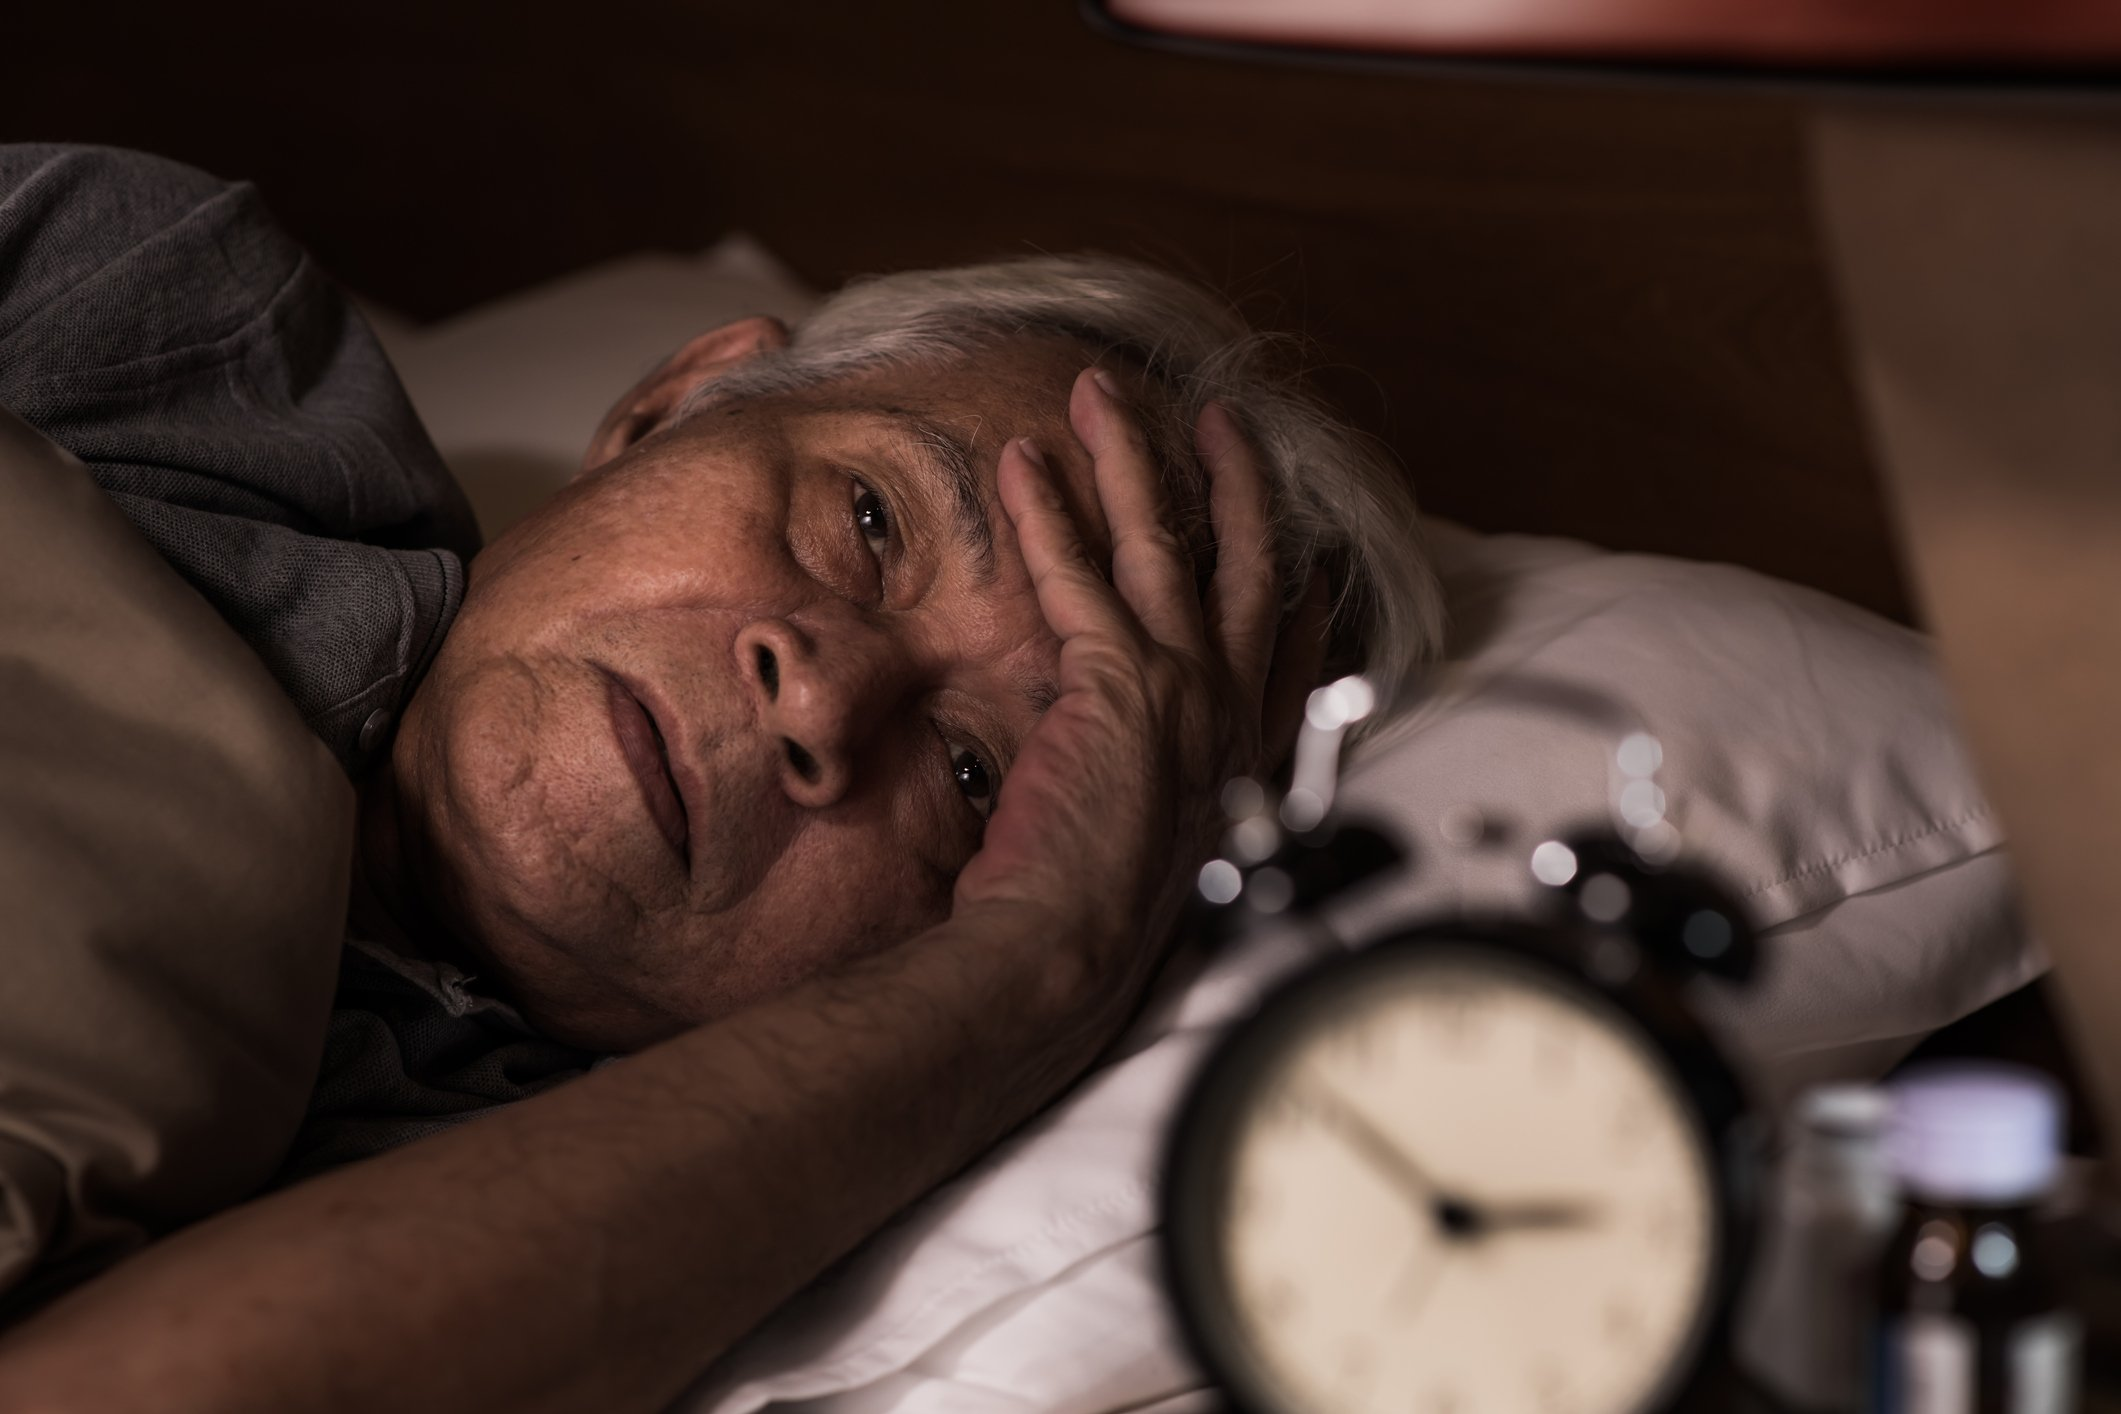 'If you find yourself waking regularly during the night, flag it with your GP so they can consider any possible underlying causes.' Photo by amenic181 / iStock / Getty Images.